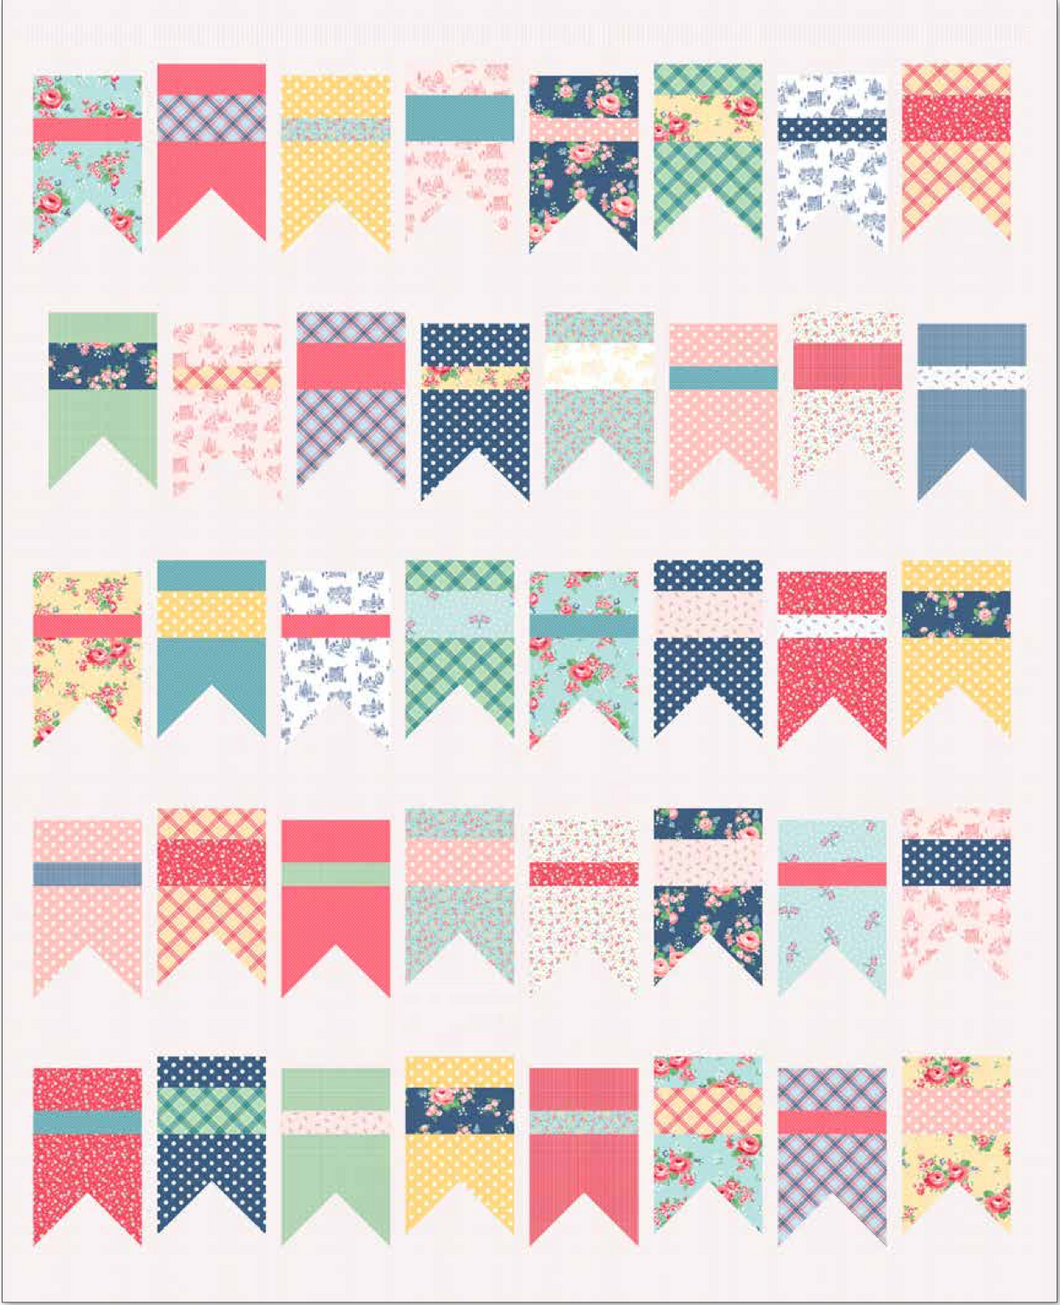 RESERVATION - Summer Bunting Quilt Kit by Amy Smart